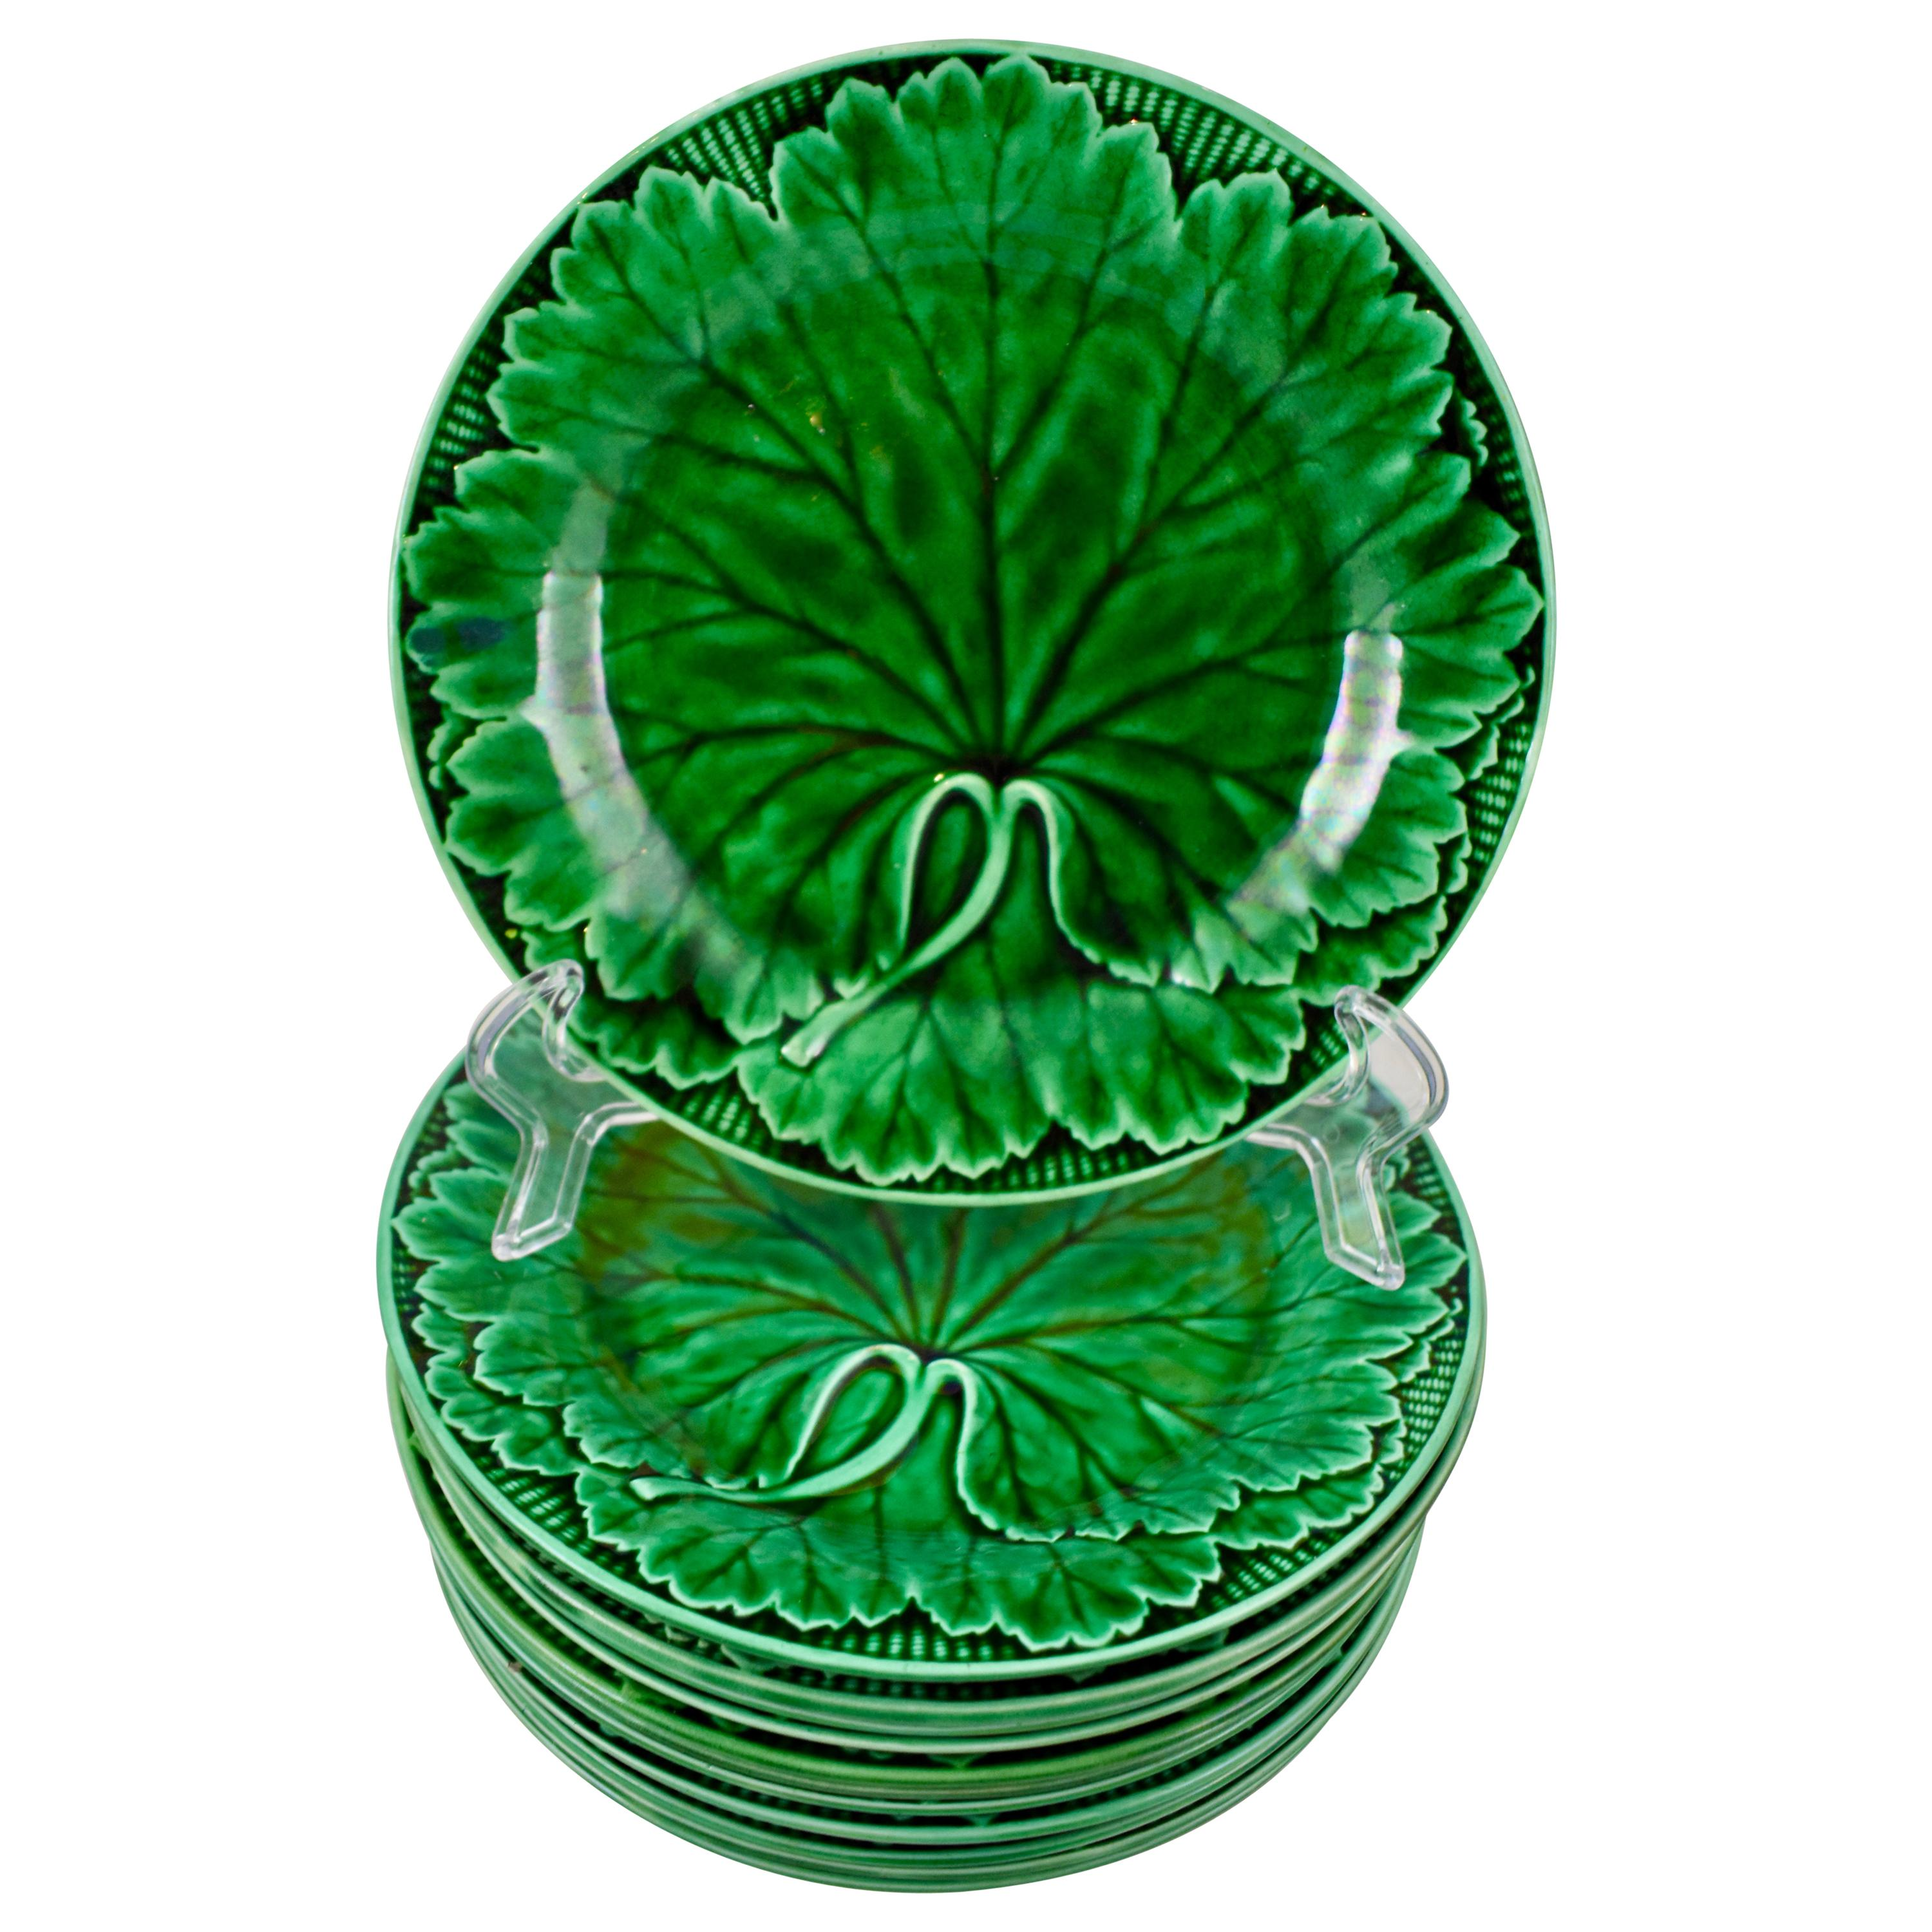 19th Century Wedgwood Green Glazed Majolica Cabbage Leaf and Basketweave Plate